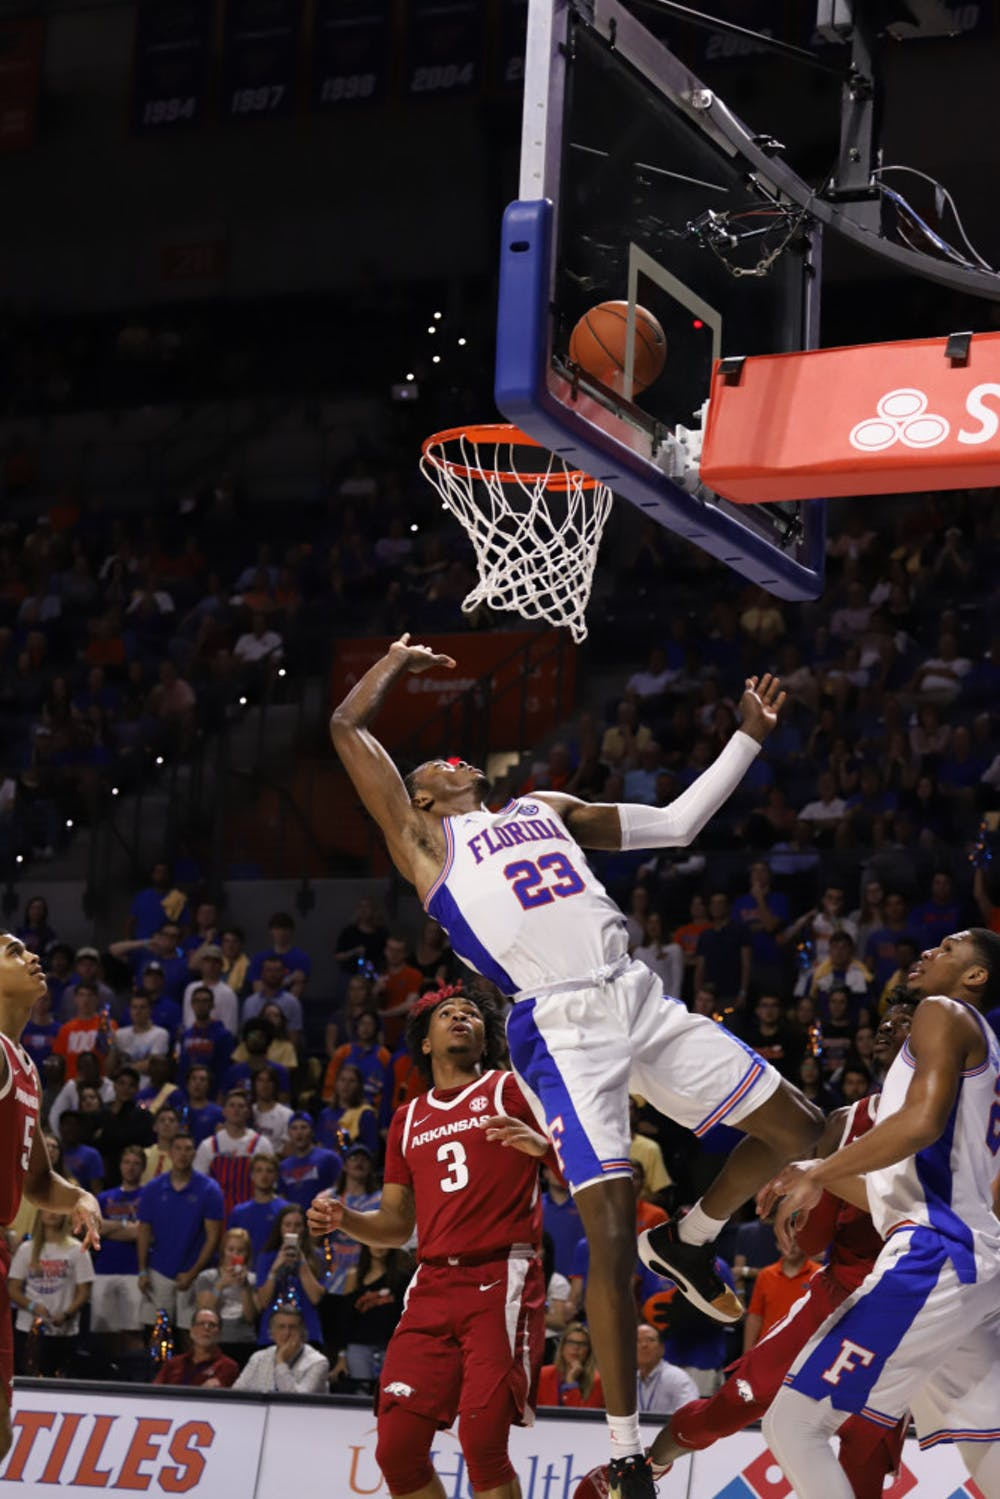 <p>Sophomore guard Scottie Lewis at last year&#x27;s game against Arkansas. Lewis struggled with foul trouble Tuesday night, scoring just four points while forcing three steals</p>